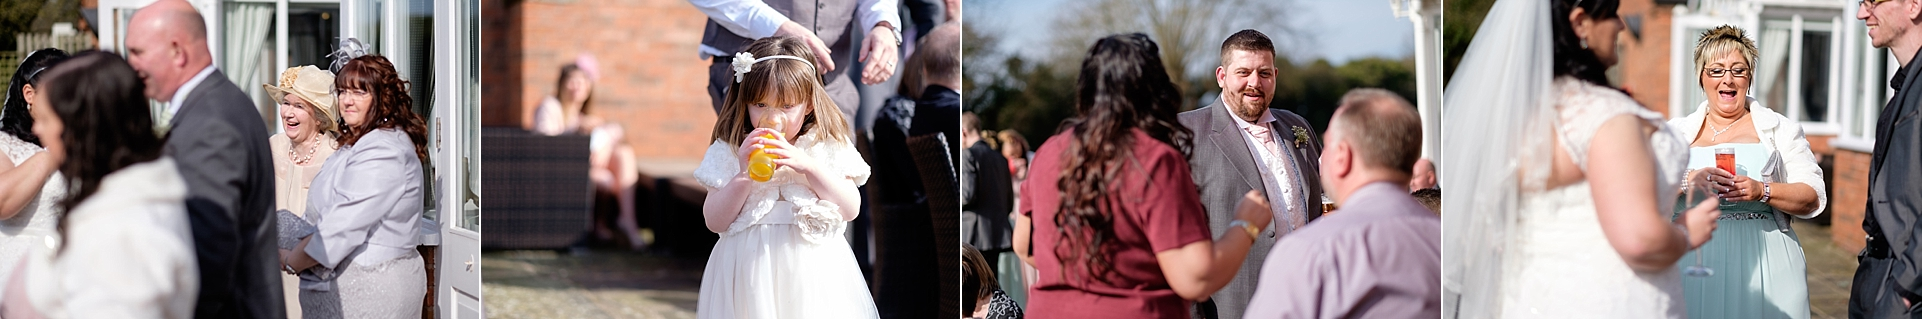 wedding photographer moat house acton trussell stafford 6.jpg